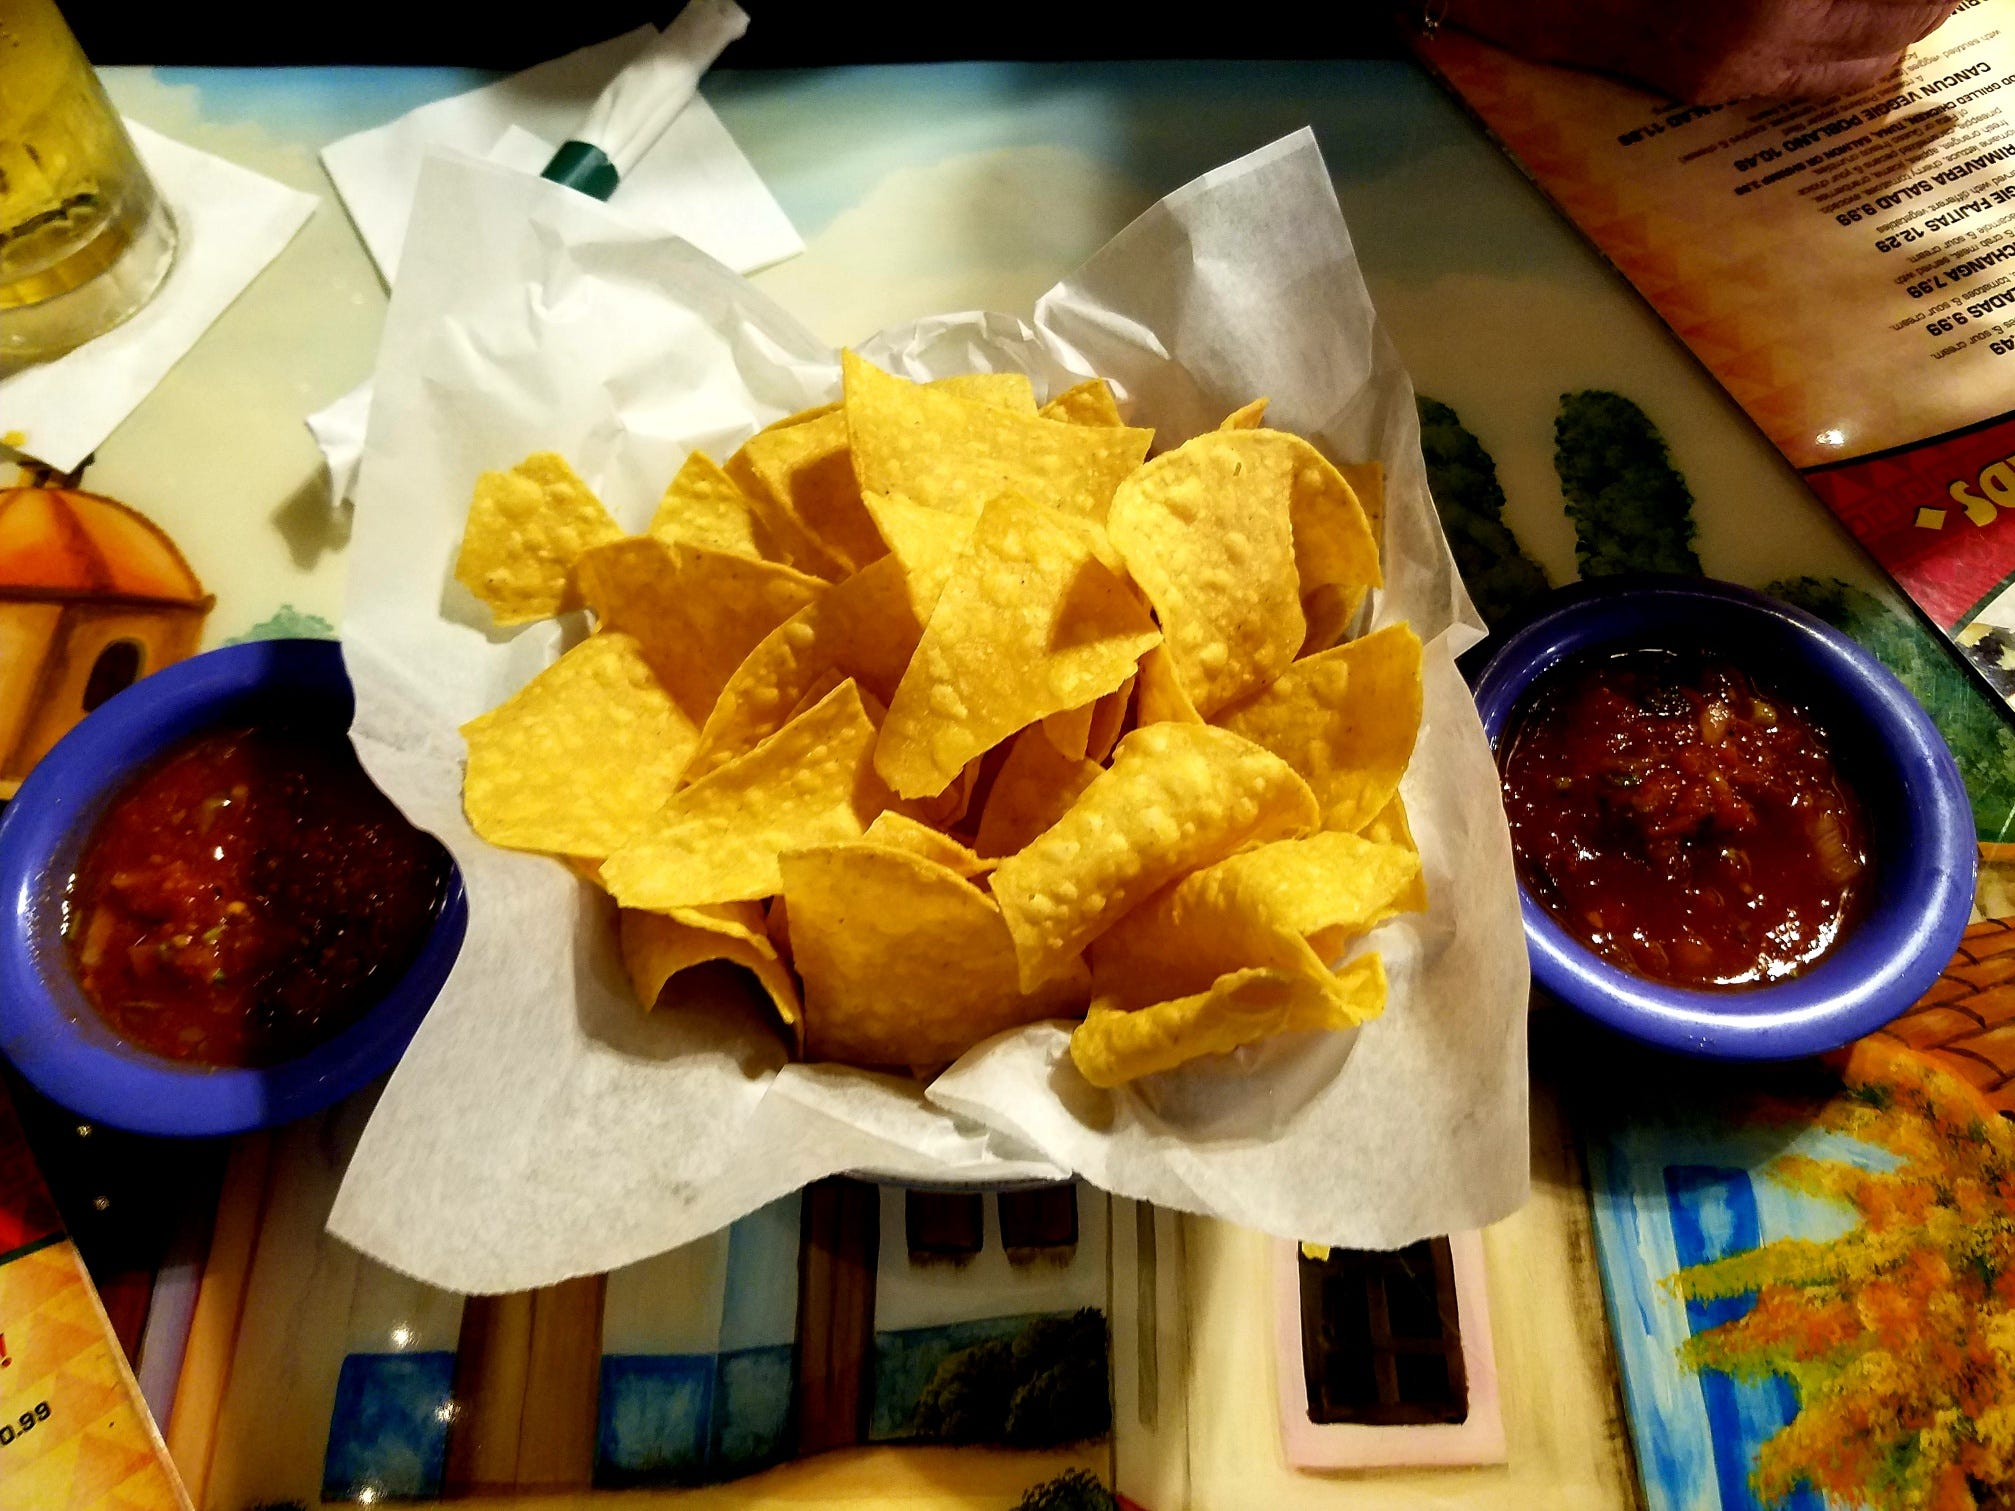 La Marimba in Stuart provided complimentary chips and a salsa cup for each of us.